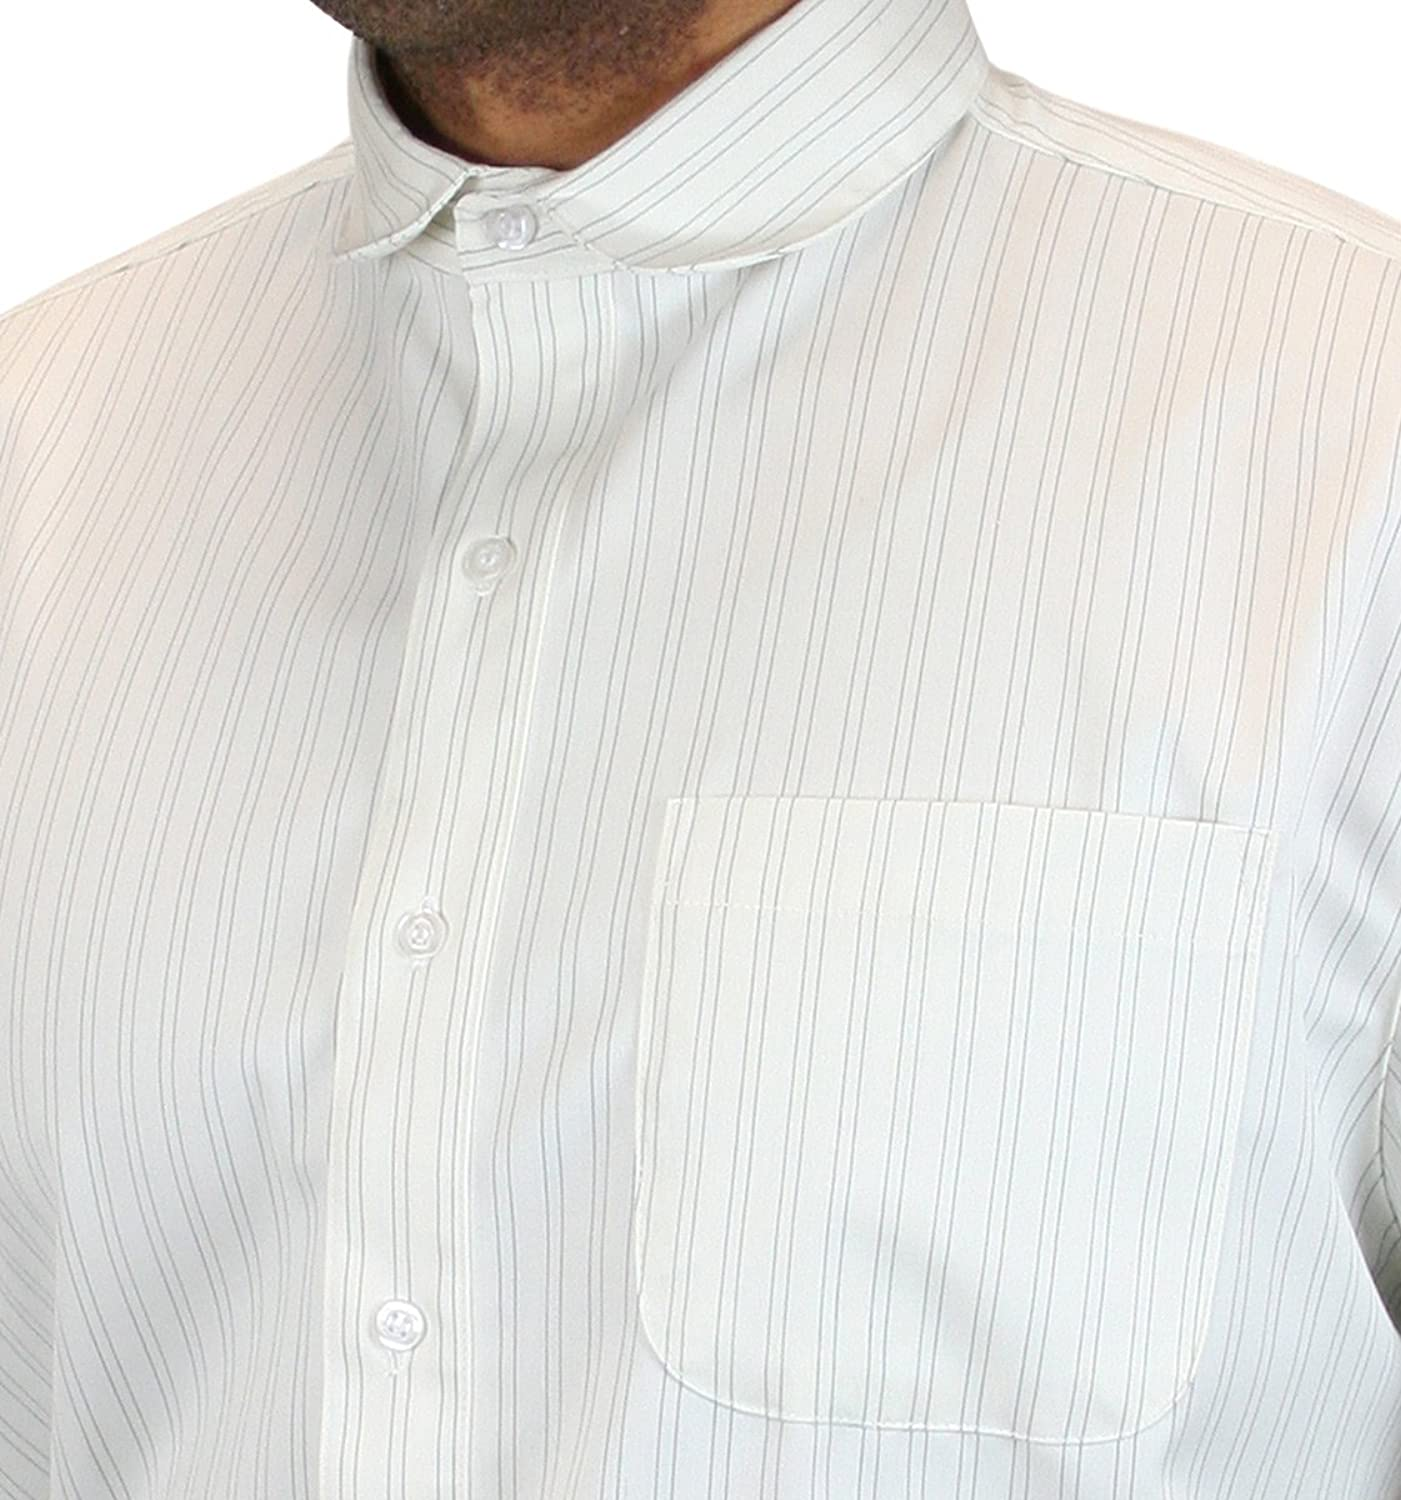 Edwardian Men's Shirts & Sweaters Mens Striped Virgil Club Collar Dress Shirt $59.95 AT vintagedancer.com